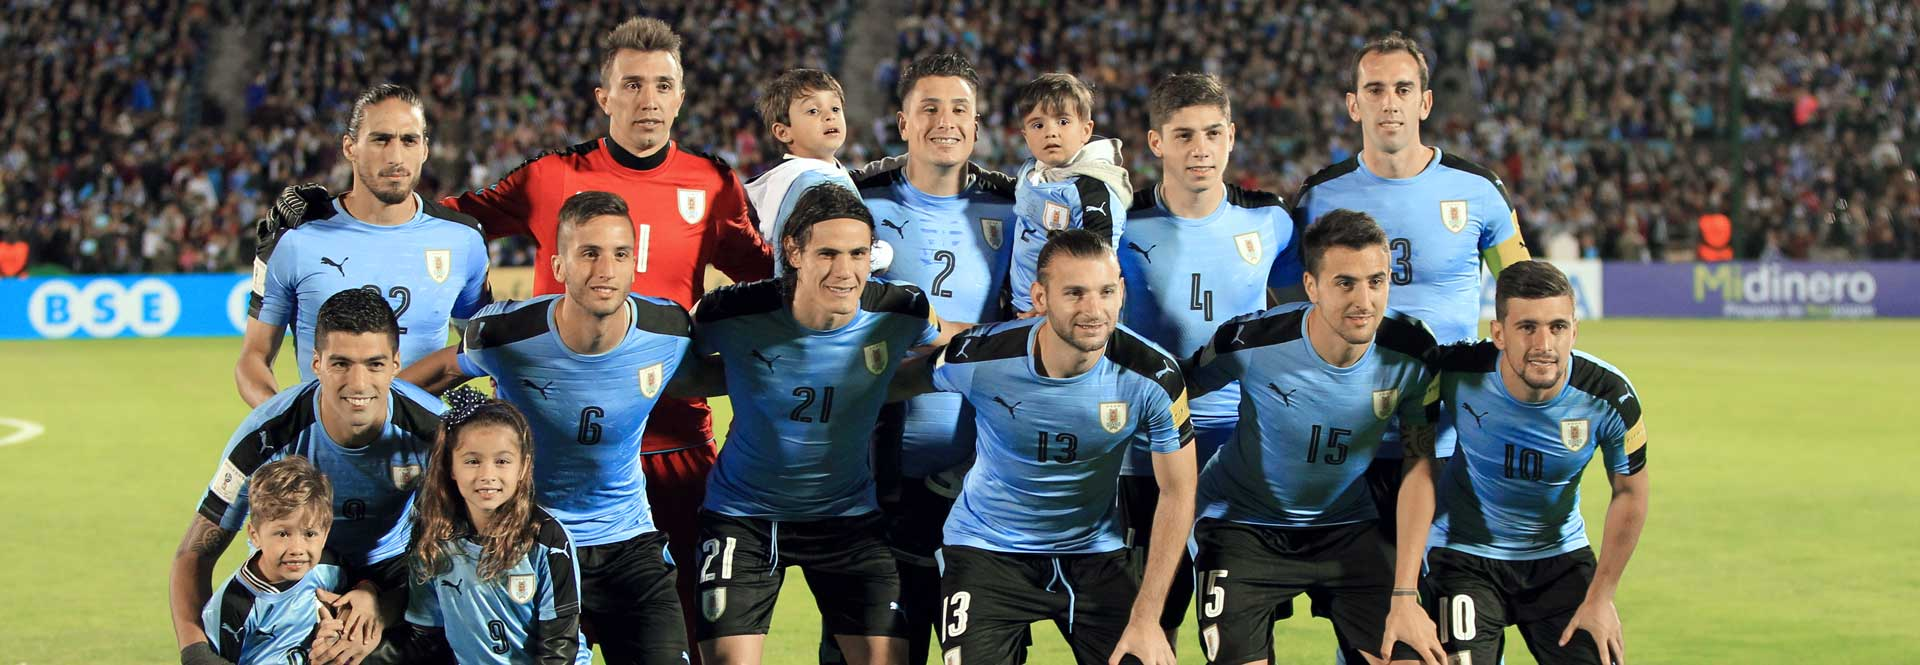 Uruguay one of the favorites